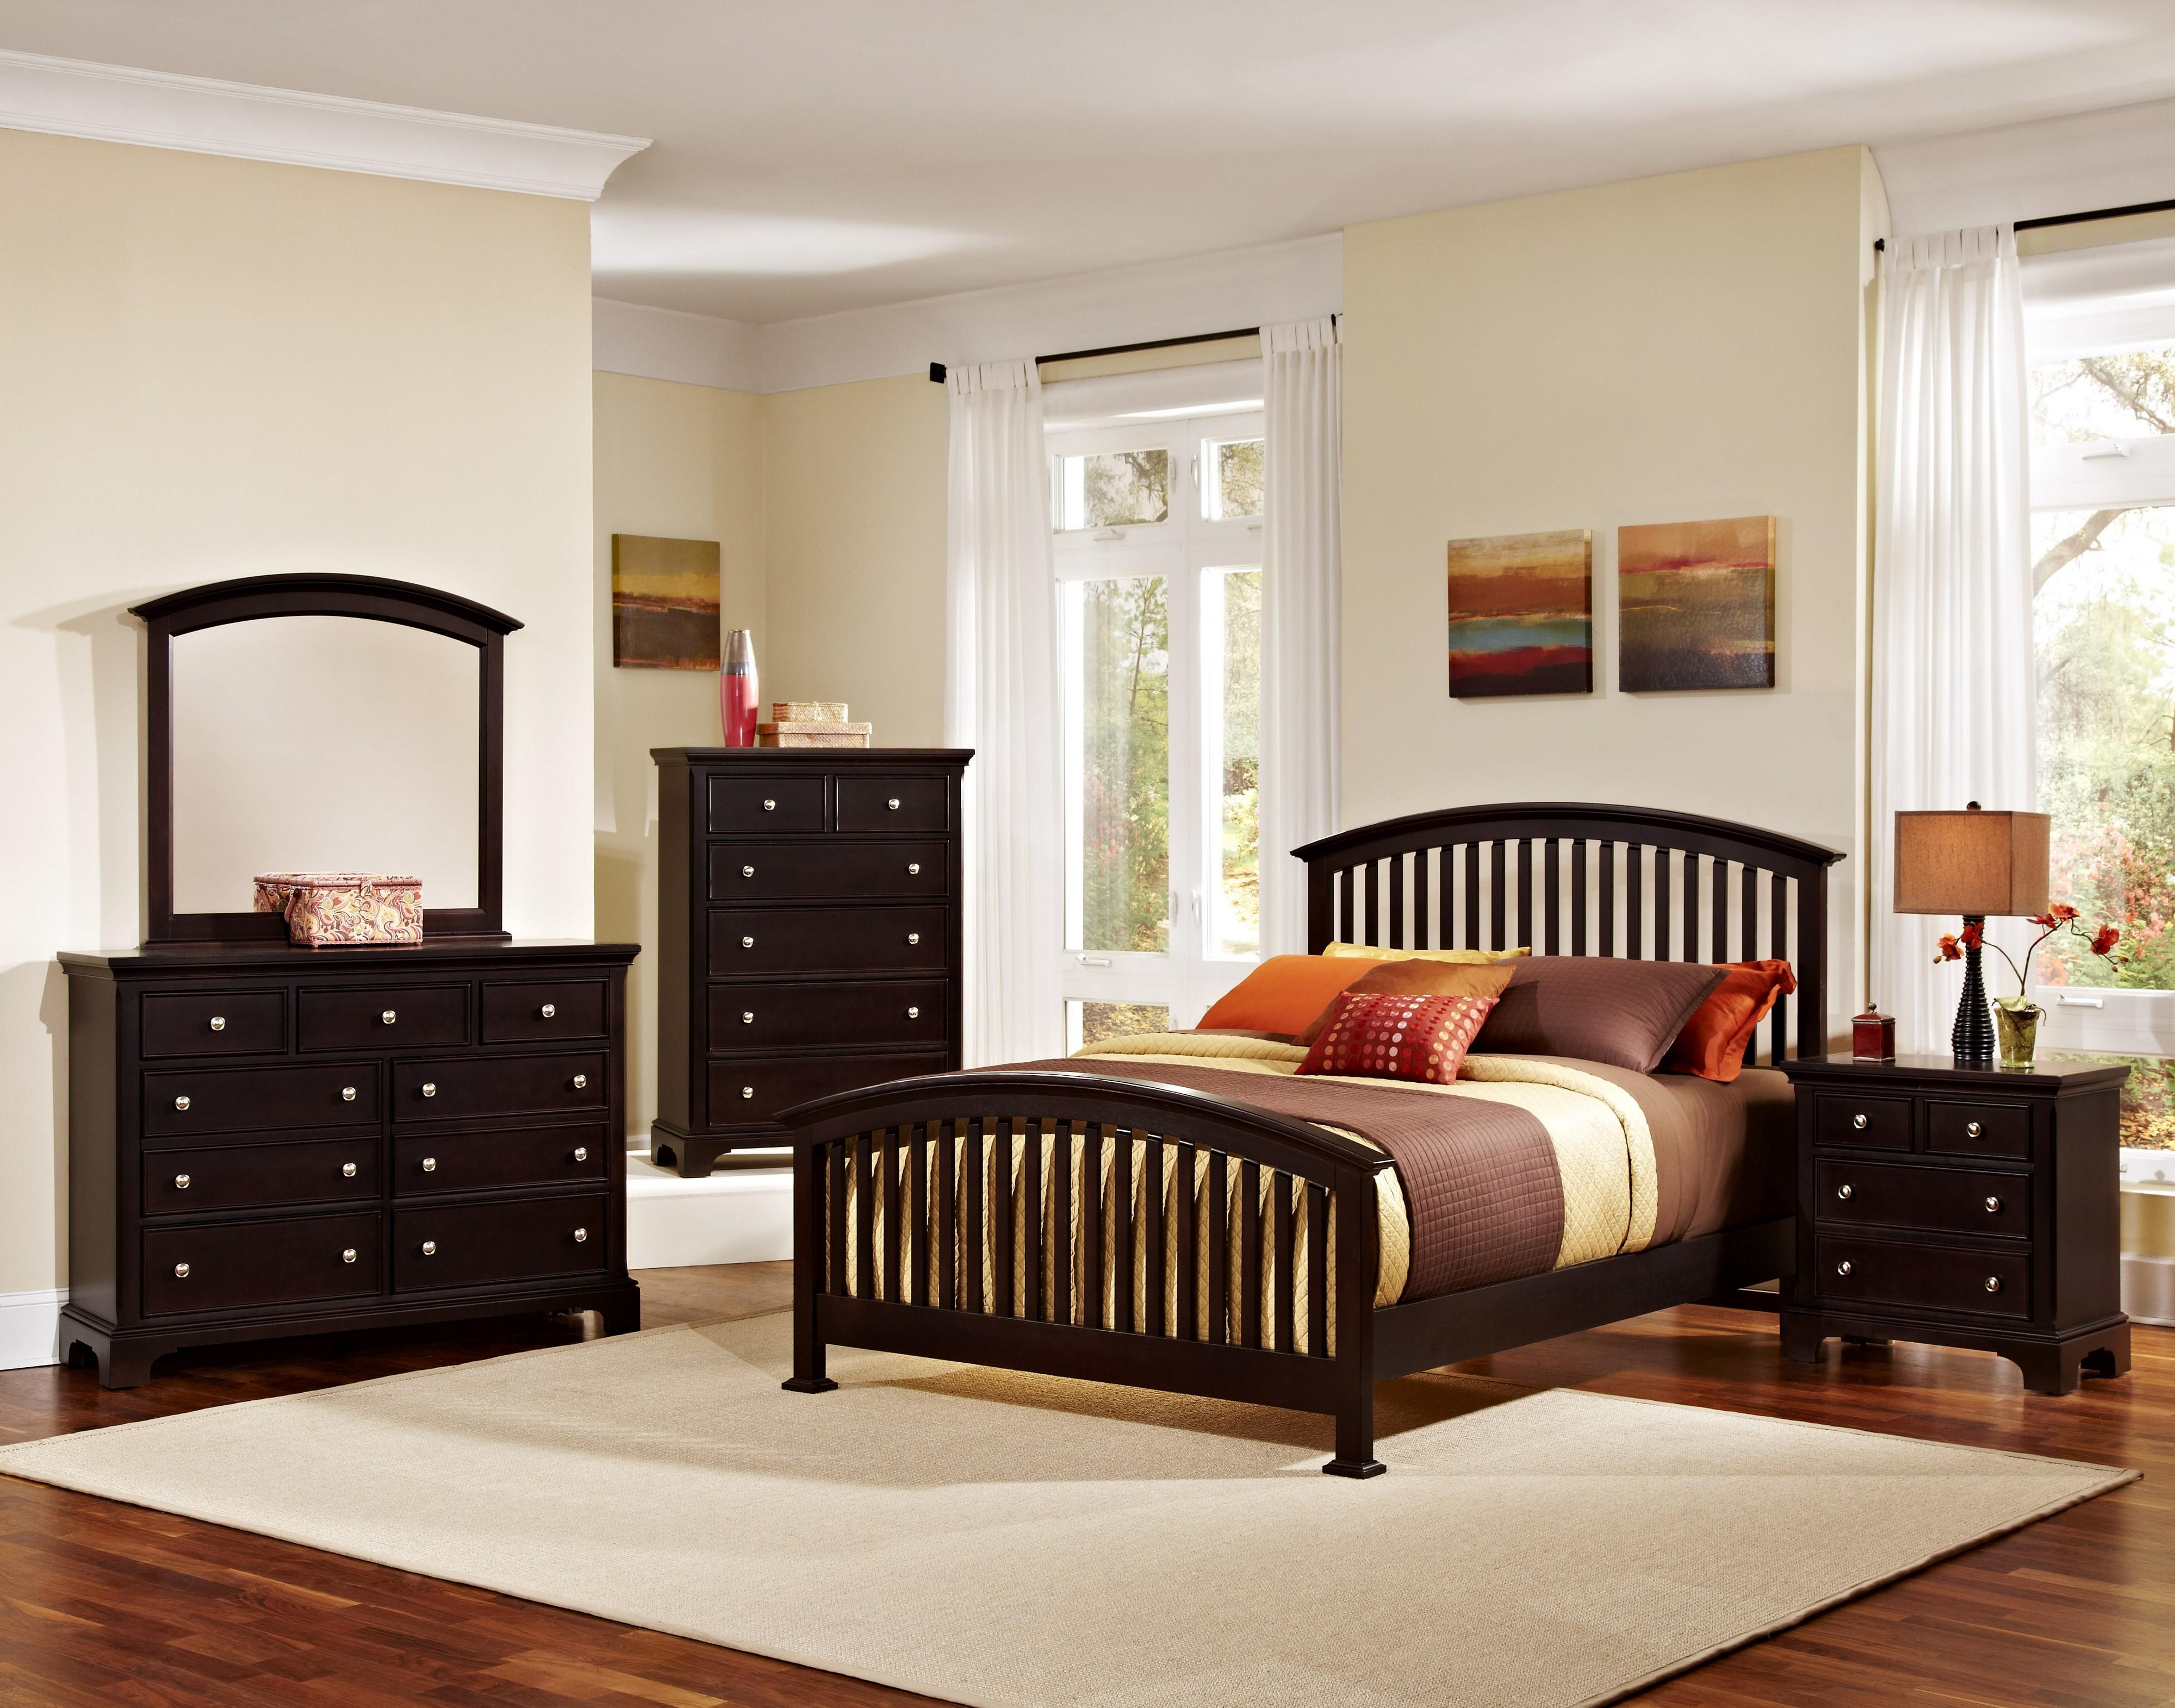 Vaughan Bassett Forsyth Queen Bedroom Group - Item Number: BB76 Q Bedroom Group 3